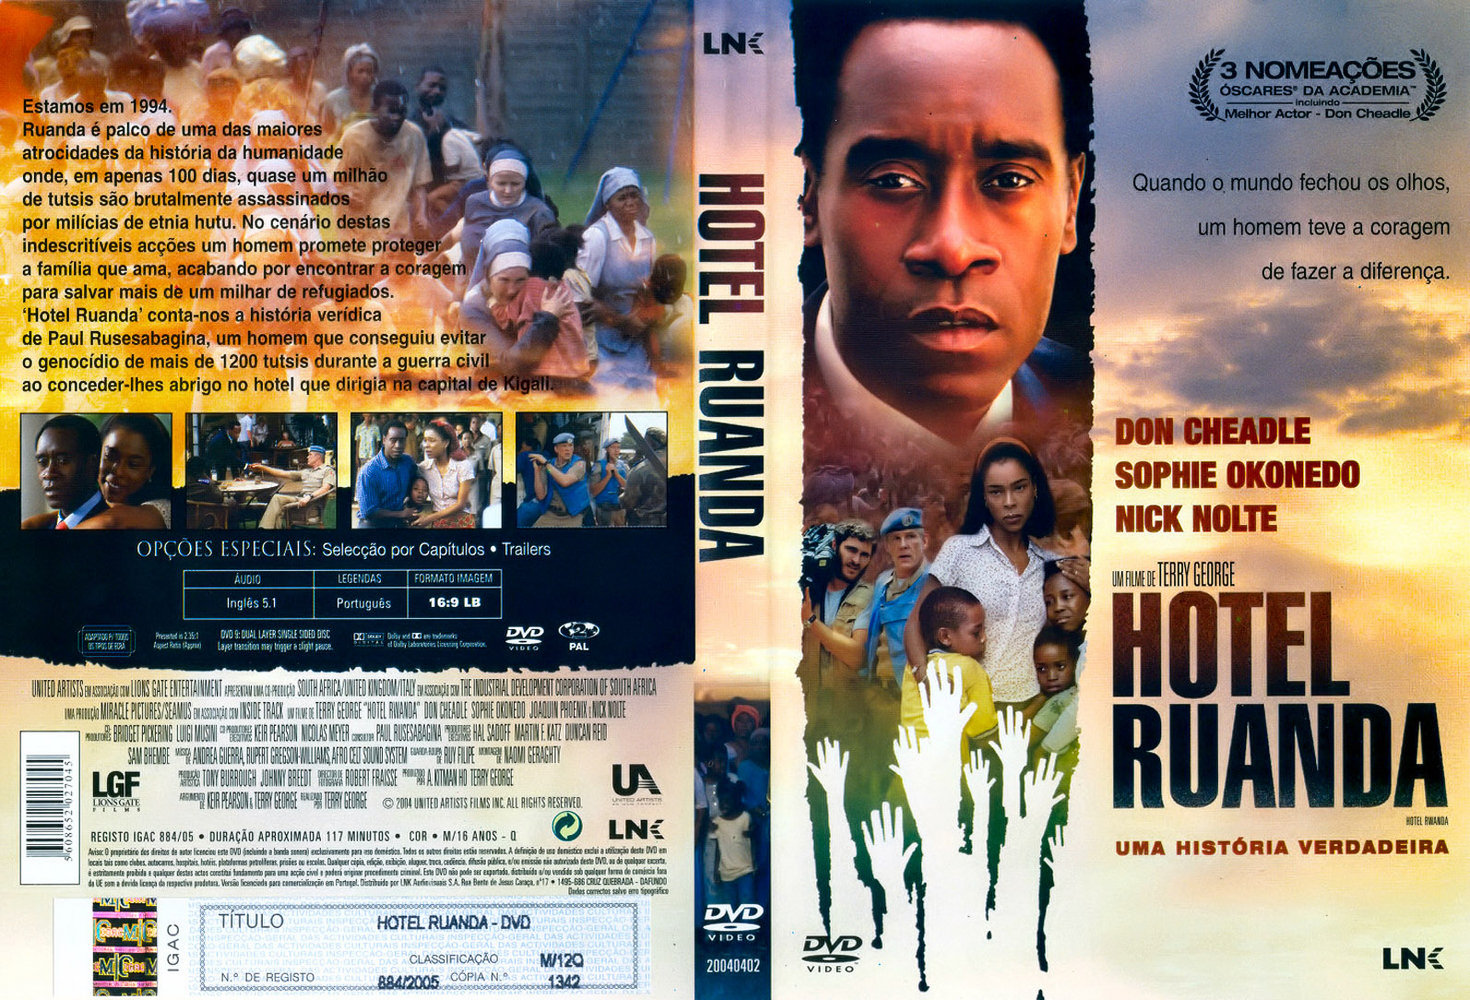 hotel rowanda Find album reviews, stream songs, credits and award information for hotel rwanda - original soundtrack on allmusic - 2005 - this collection, billed as music from the film&hellip.